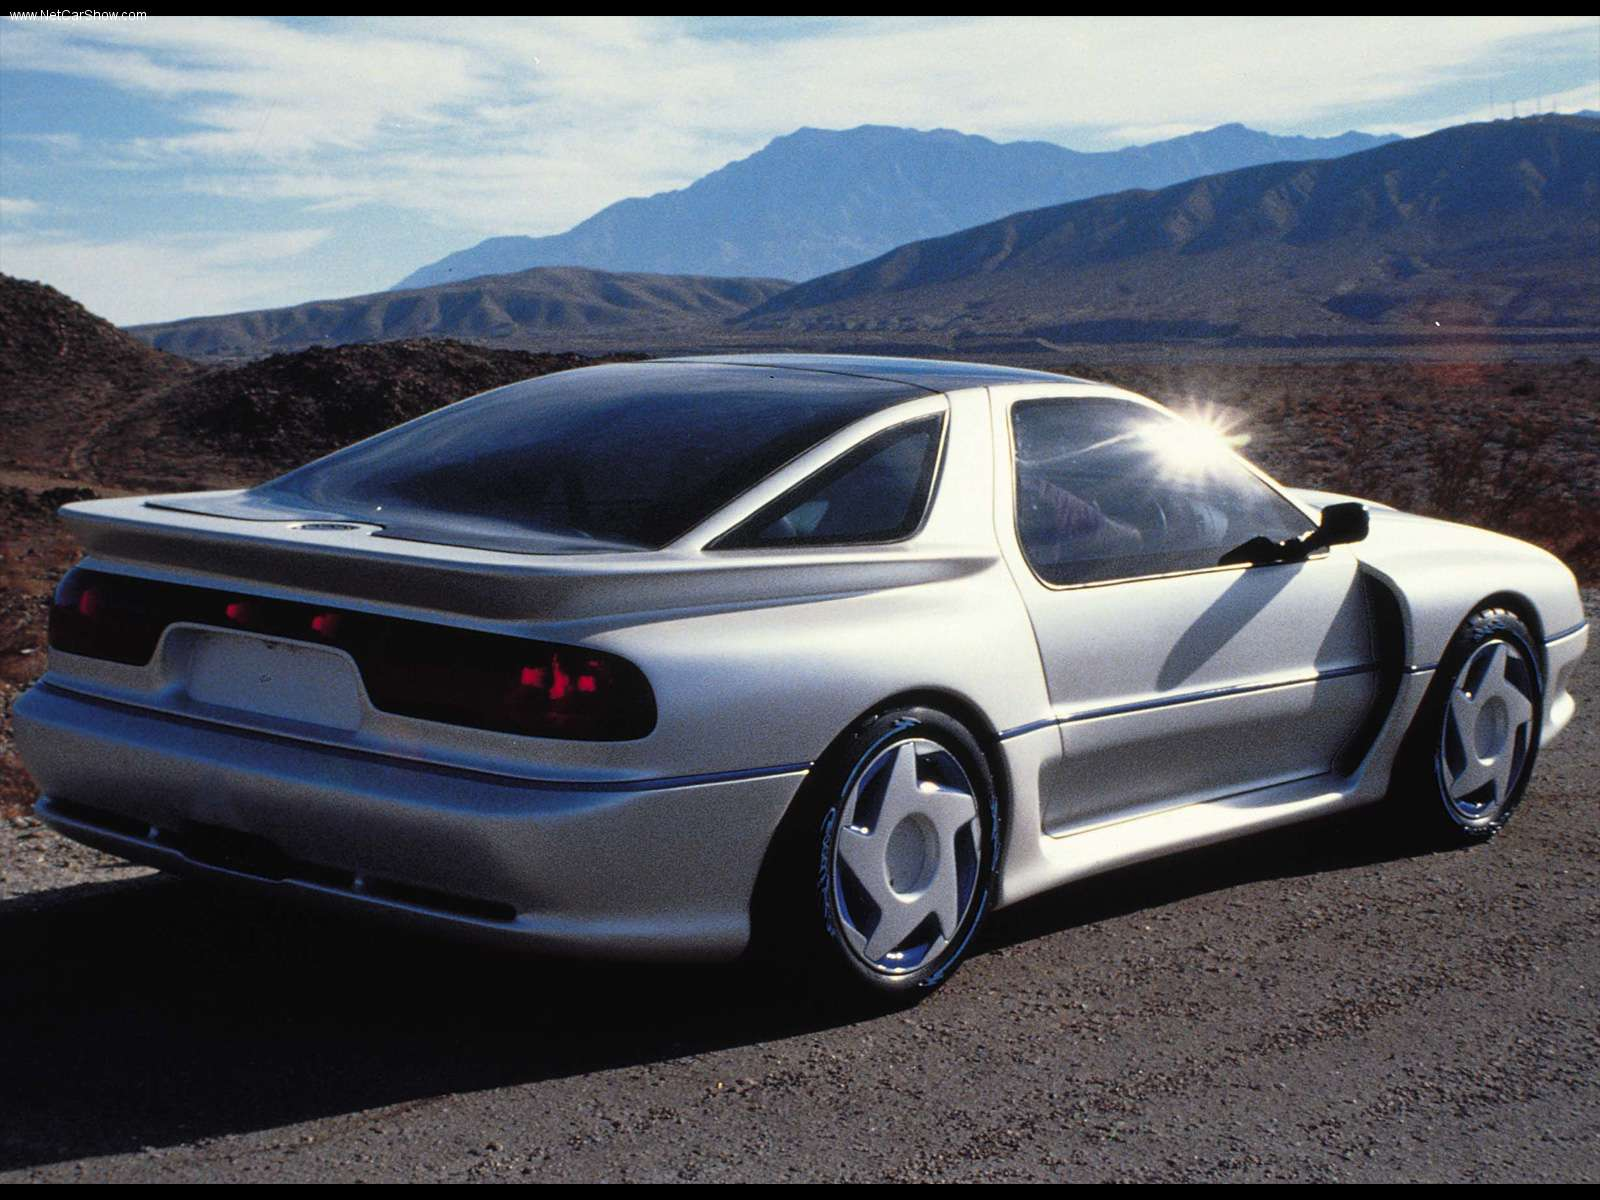 Dodge Daytona Rt Concept X Wallpaper on 1997 Dodge Intrepid Sport